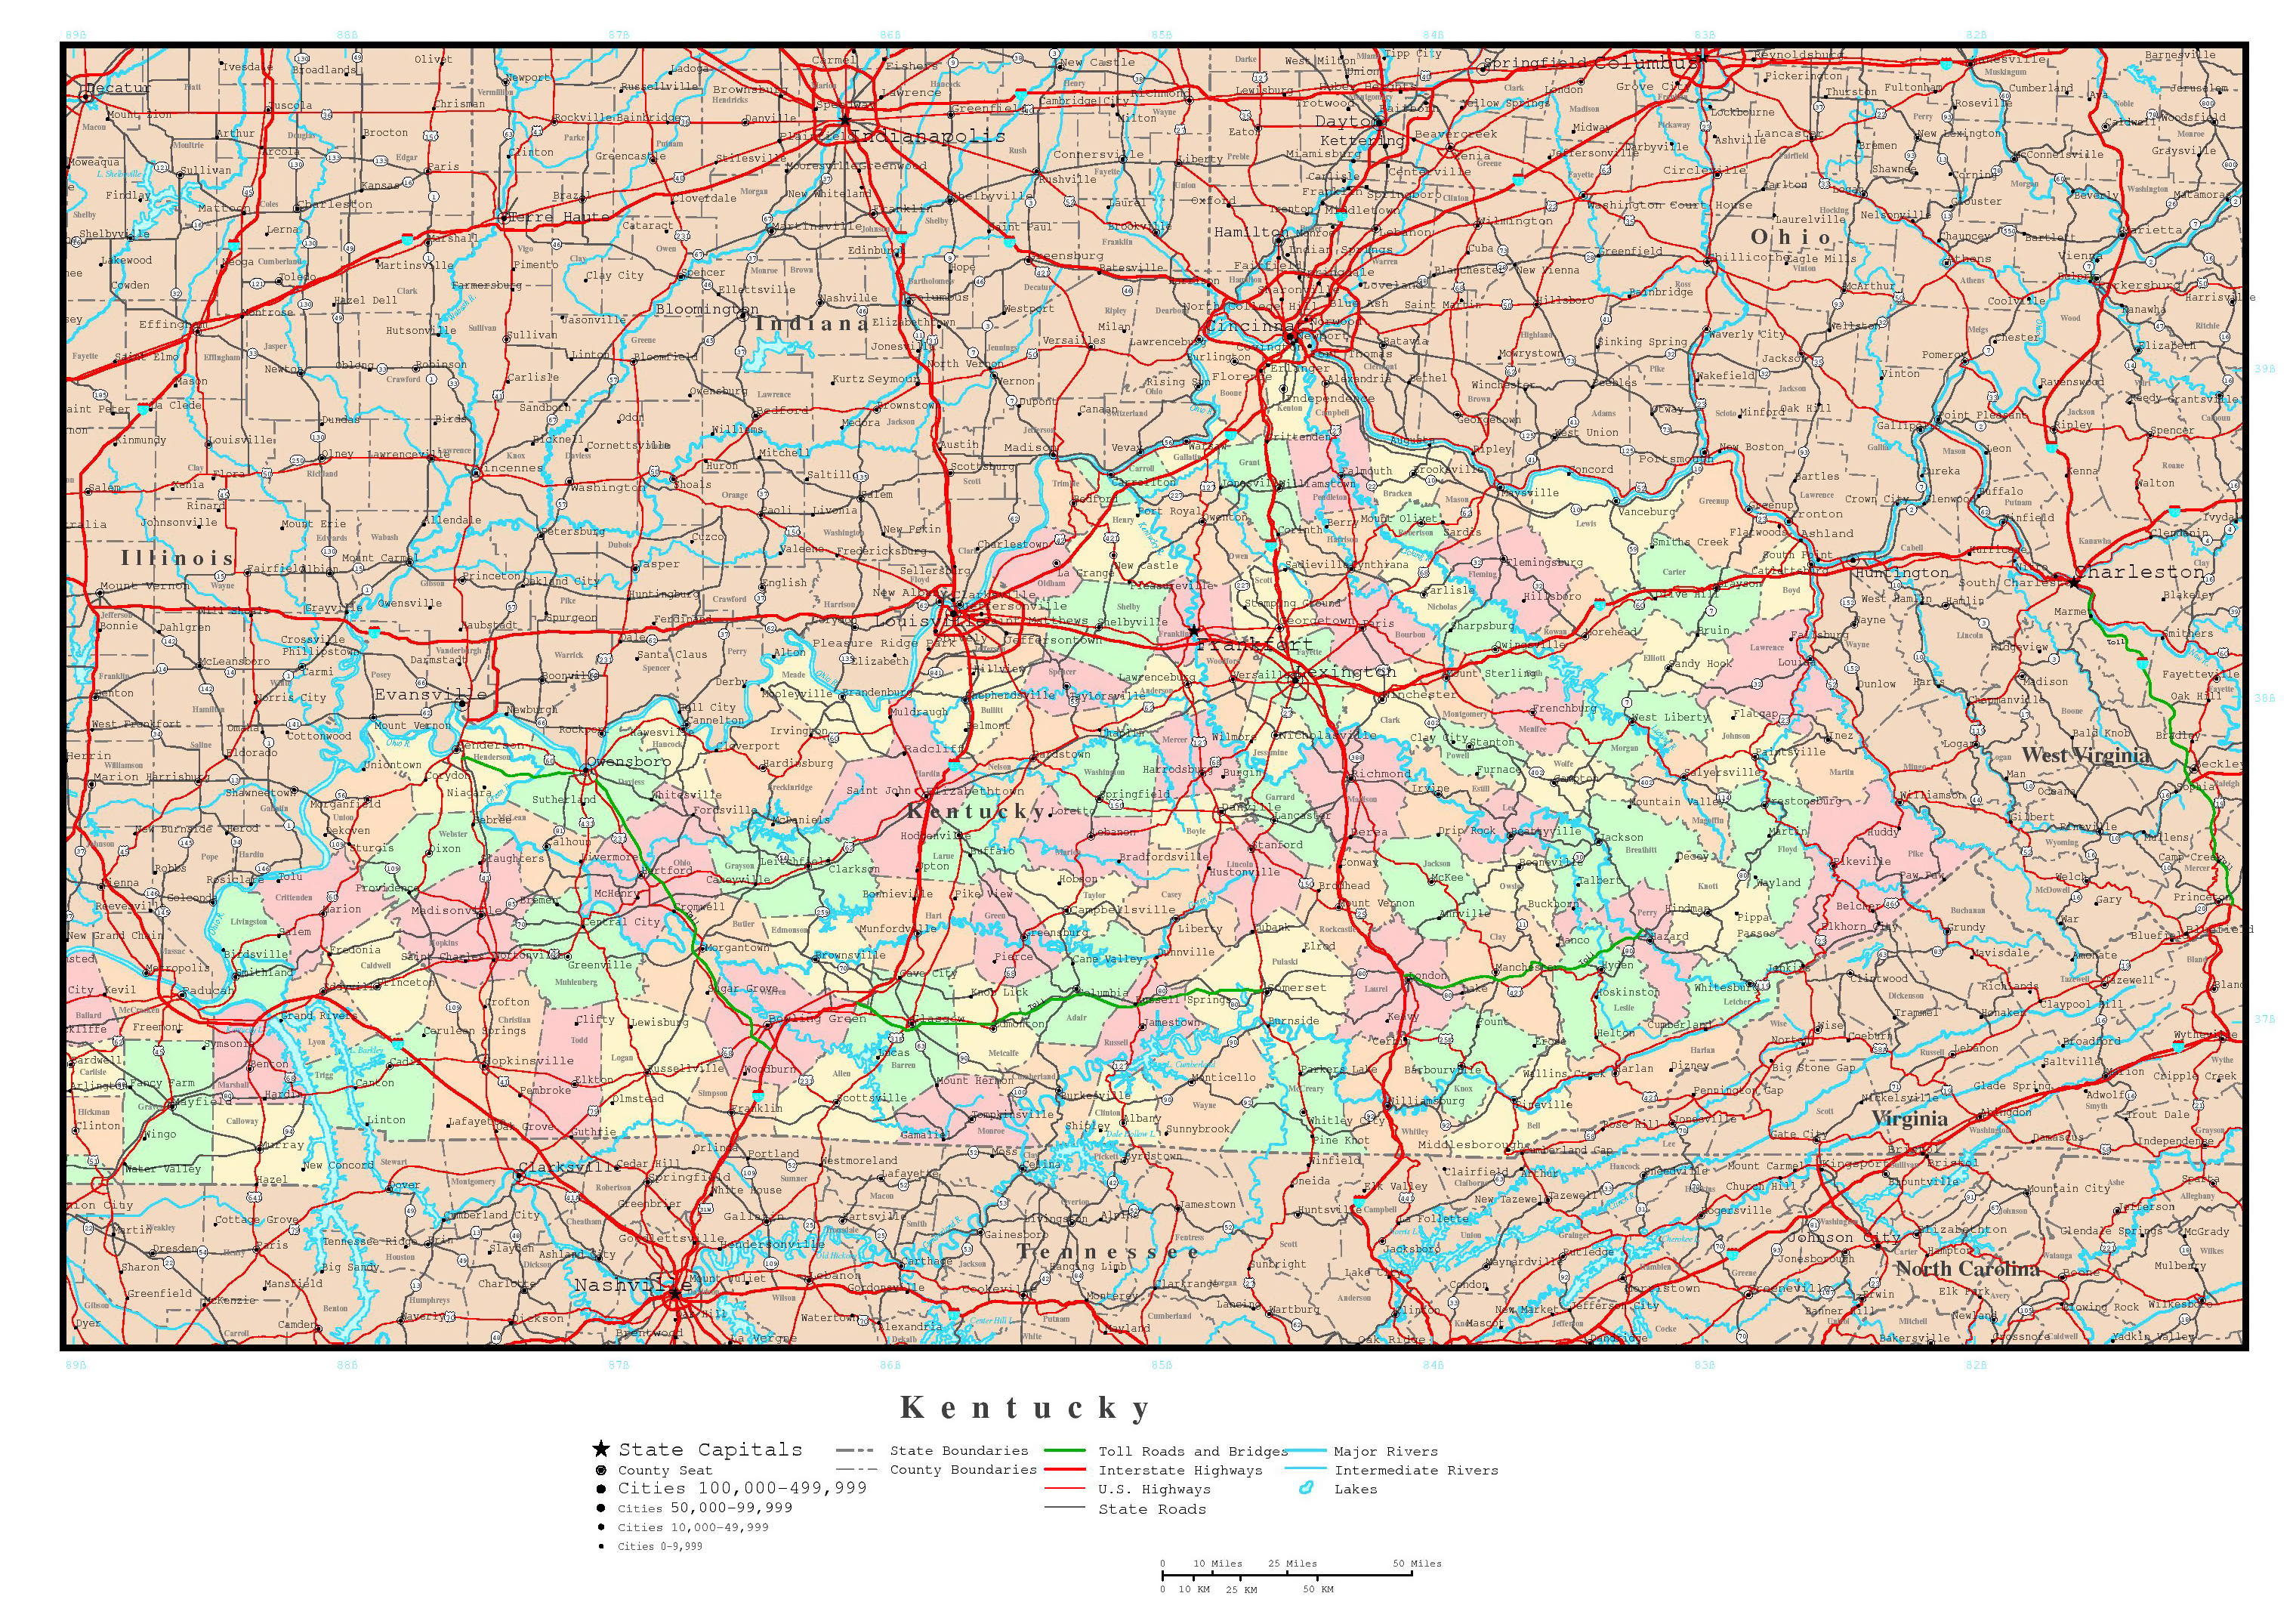 Large detailed administrative map of Kentucky state with roads ... on ky road map of kentucky, ky state map major cities, ky state paduke, map of alabama major cities, ky state map by county, ky state produce, ky state paducah hospitals, ky state road map, ky map with counties and cities, map of tn cities, map of all cities, ky state parks map of resorts, kentucky cities, map of ky cities, ky state map blue, ky state topographical map, map of massachusetts towns and cities, ky highway map, ky usa map,